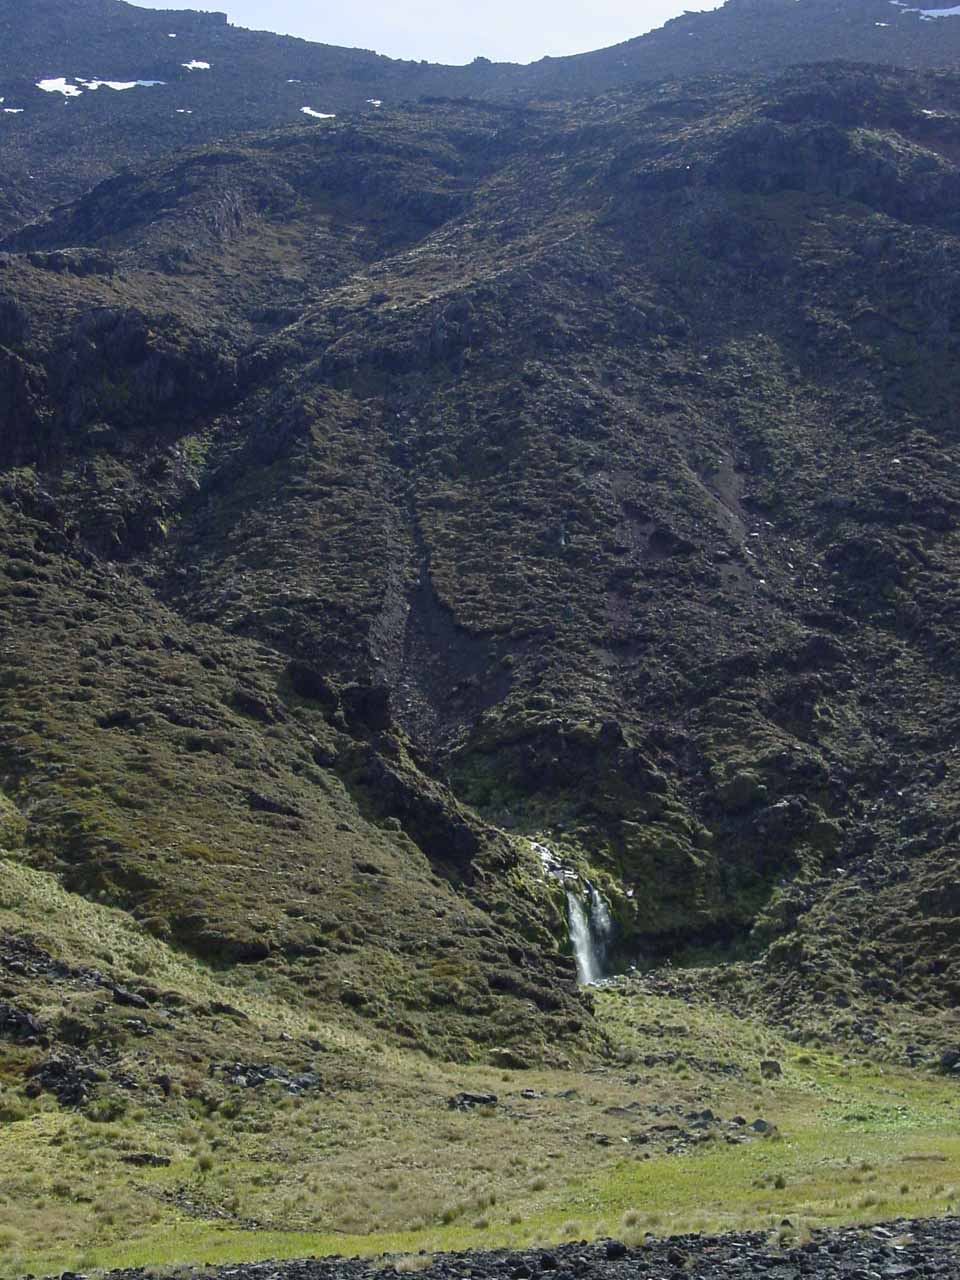 Distant view of Soda Spring in context